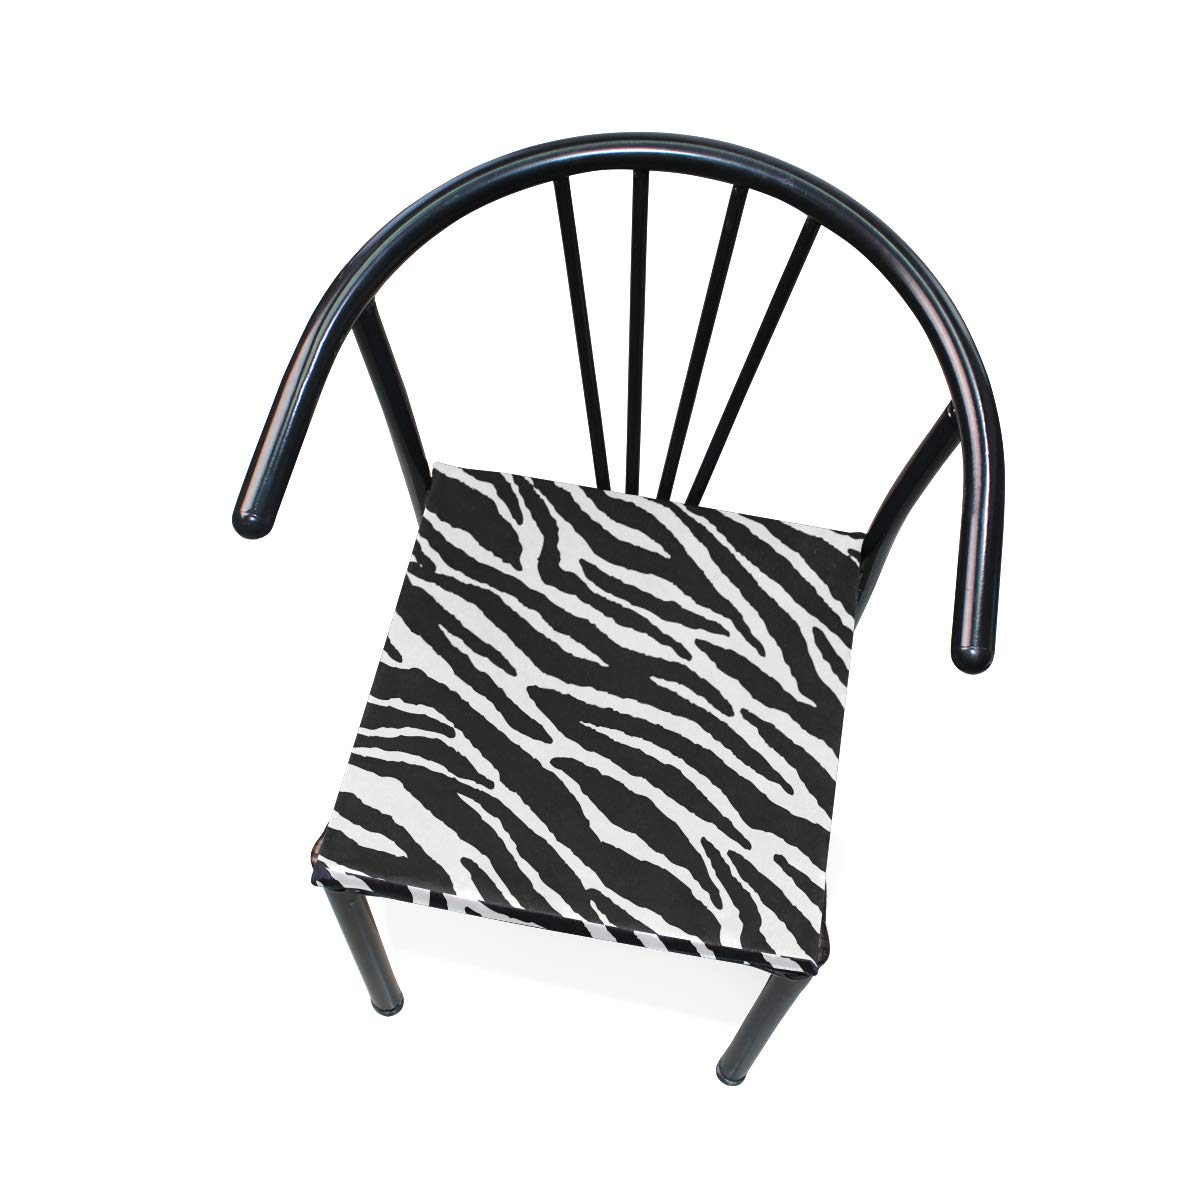 TSWEETHOME Comfort Memory Foam Square Chair Cushion Seat Cushion with Animal Skins Zebra Print Chair Pads for Floors Dining Office Chairs by TSWEETHOME (Image #5)